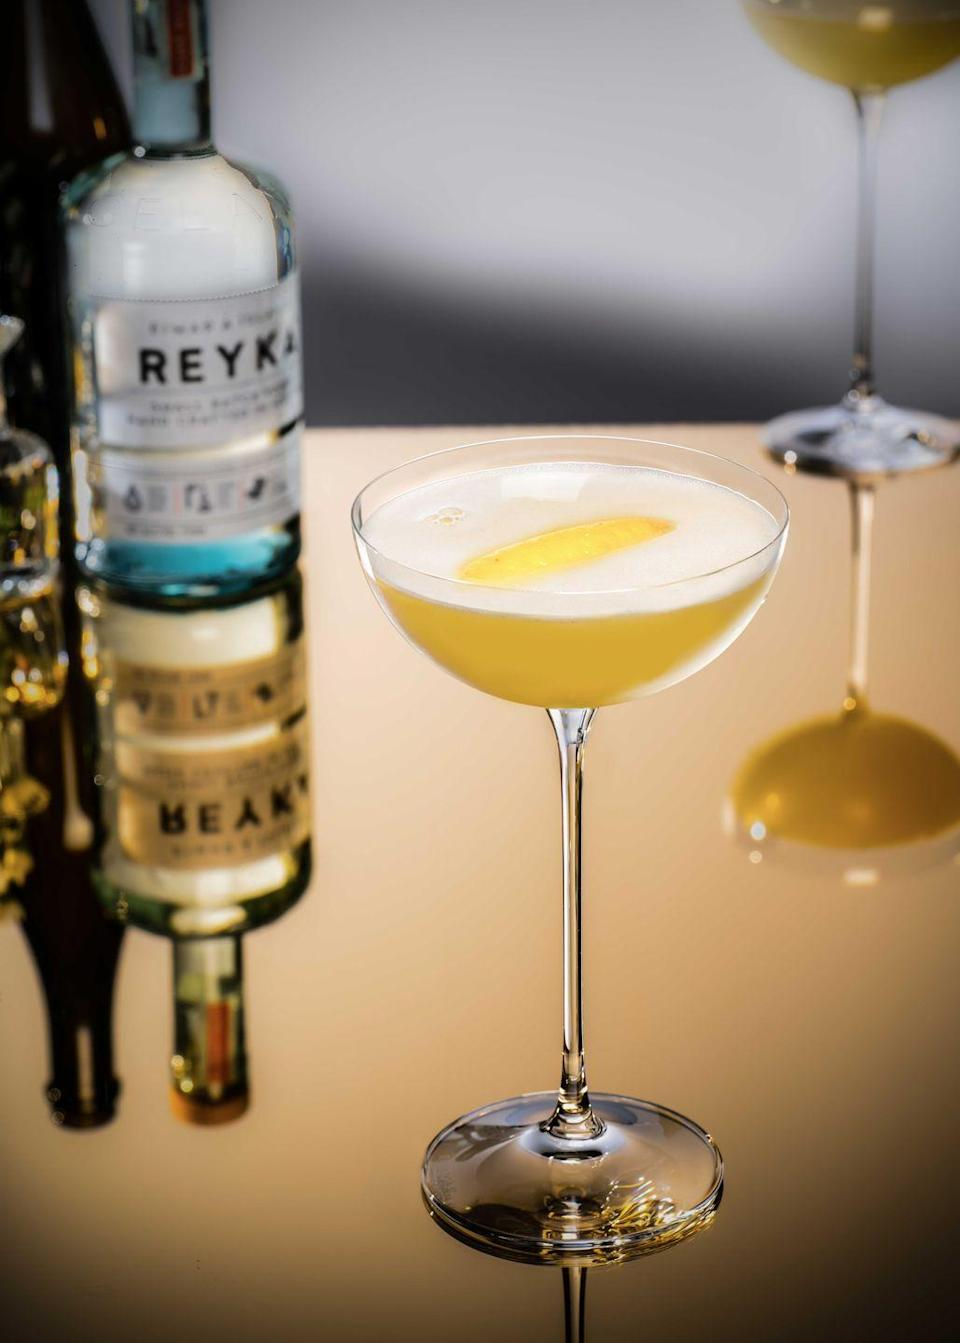 <p><strong>Ingredients</strong></p><p>1.5 oz Reyka vodka<br>.5 oz lemon juice<br>.25 oz simple syrup<br>2 oz pear juice<br>Champagne to top</p><p><strong>Instructions</strong></p><p>Combine all ingredients in shaker except champagne. Shake, serve in coupe, top with champagne, add a twist of lemon for garnish.</p>